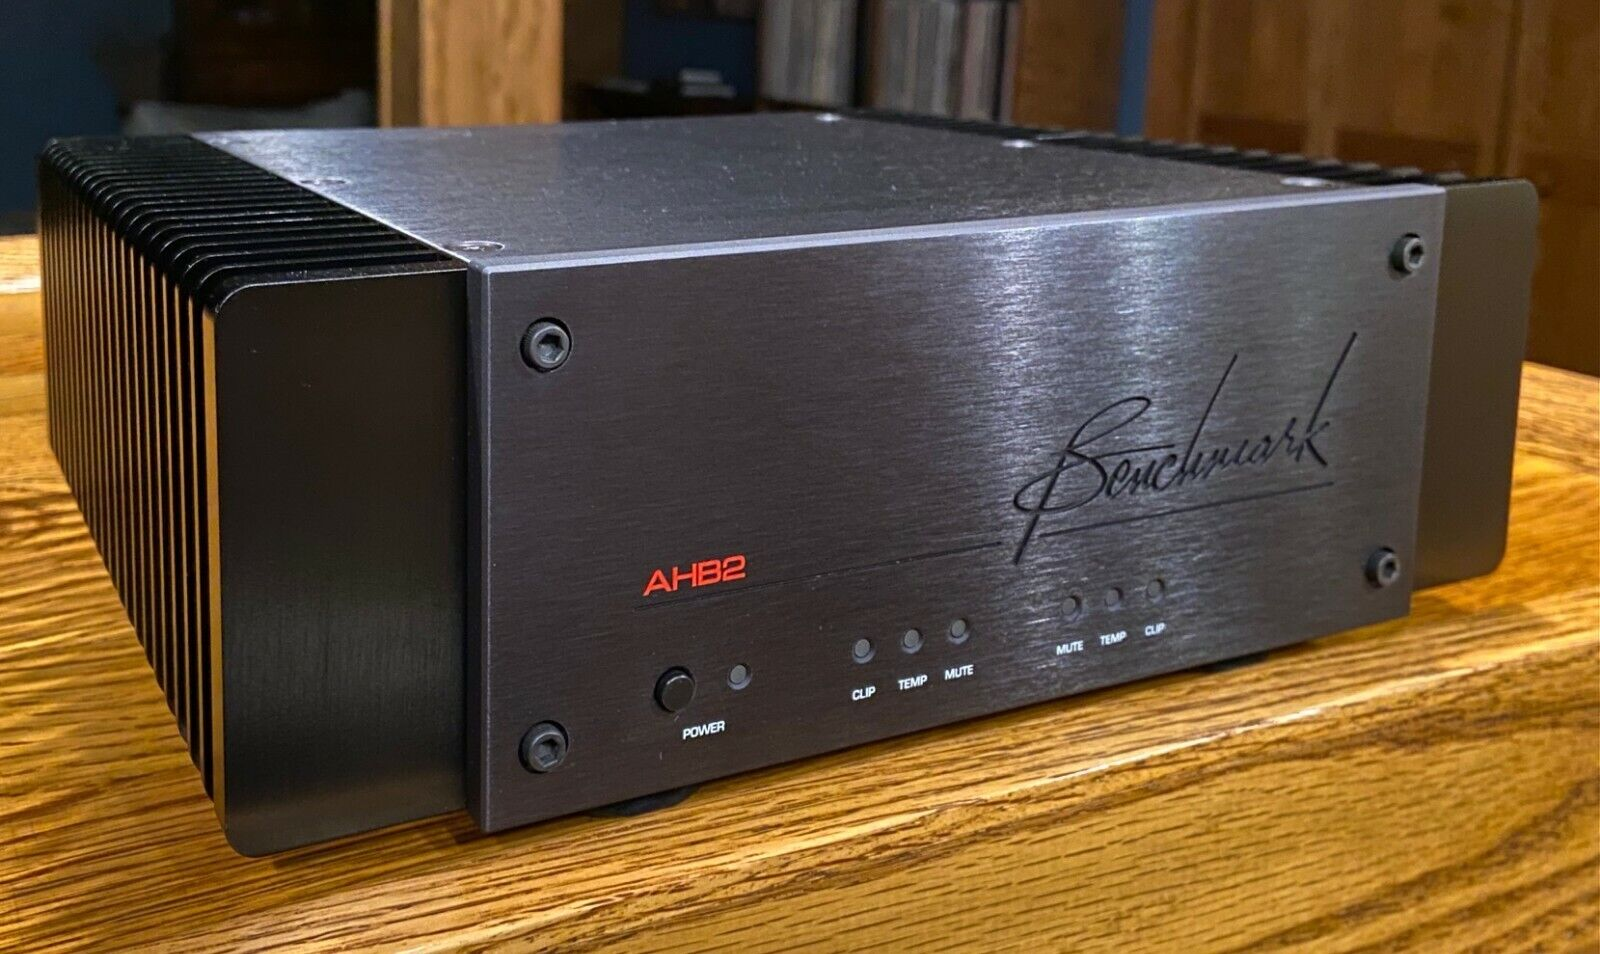 Benchmark AHB2 Power Amplifier. Buy it now for 2599.00